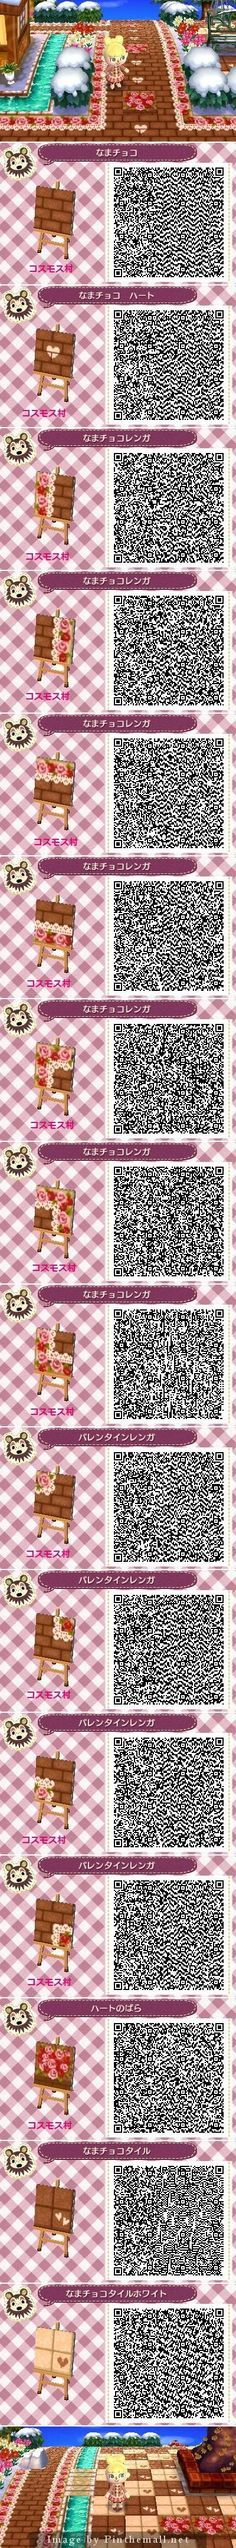 Disney la petite sir ne princesse ariel animal crossing for Animal crossing boden qr